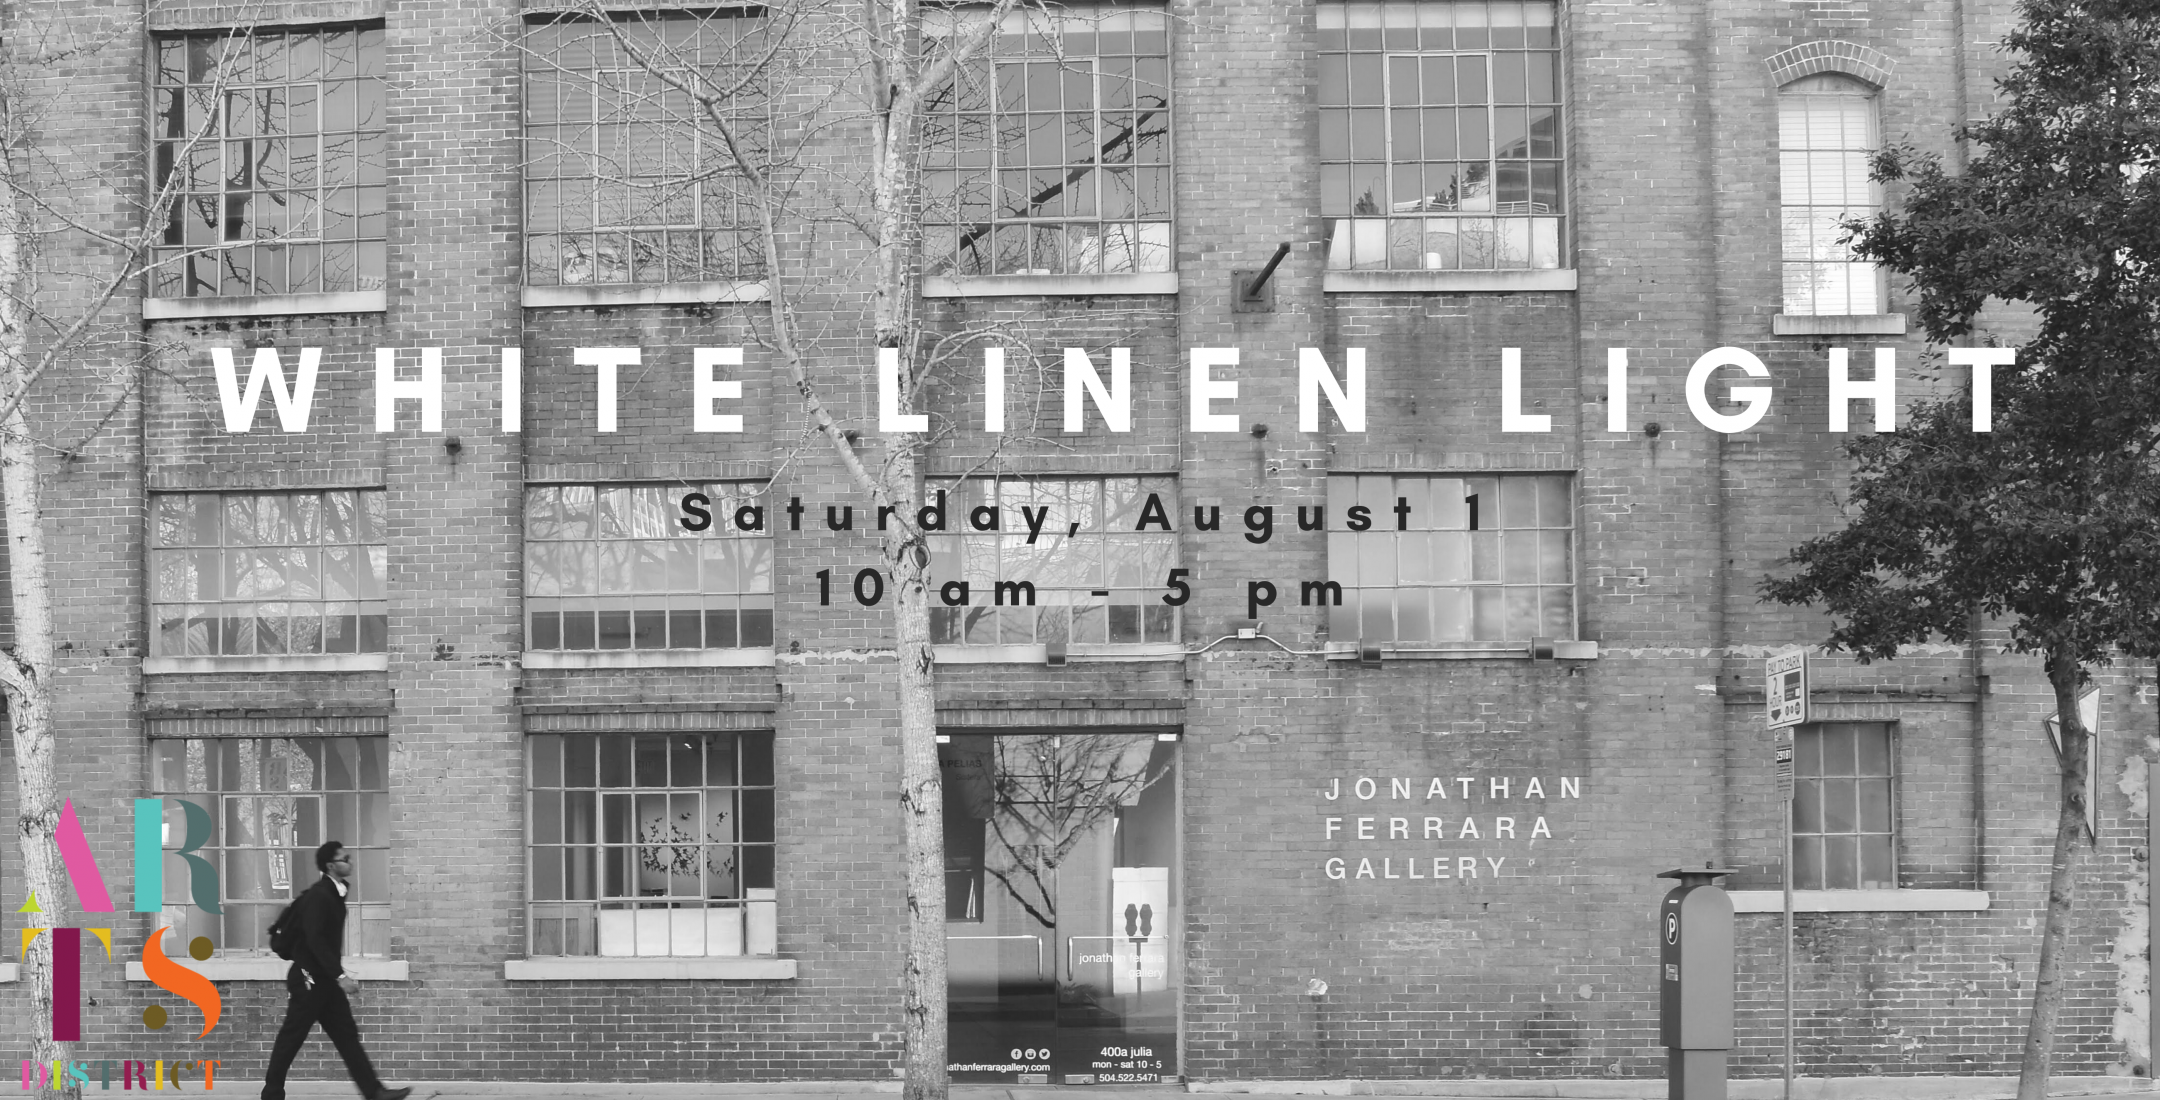 White Linen Nightcan't go on as usual, due to COVID-19 community safety restrictions, so we have decided to hold a daytimeart walk in its stead on 1 August from 10 am - 5 pm to allow for maximum social distancing and art appreciation - we're calling this eventWHITE LINEN LIGHT!,